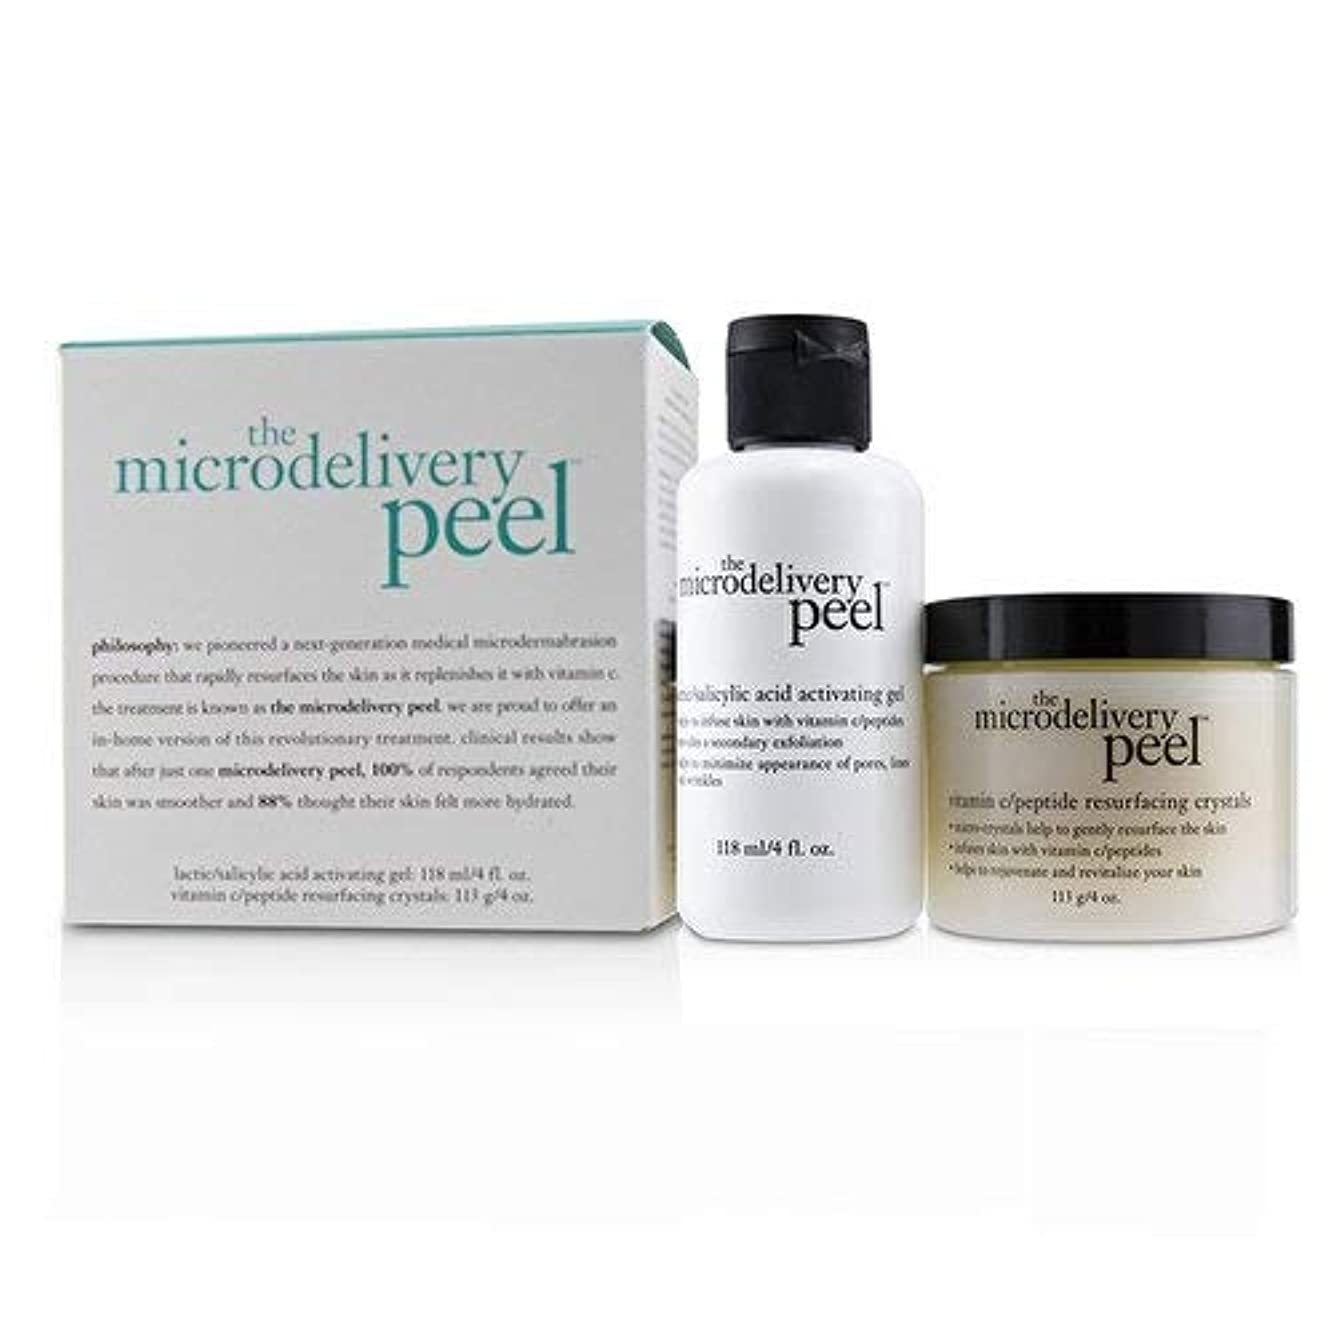 スピーカー起点ベアリングフィロソフィー The Microdelivery Peel: Lactic/Salicylic Acid Activating Gel 118ml + Vitamin C/Peptide Resurfacing Crystals 2pcs並行輸入品